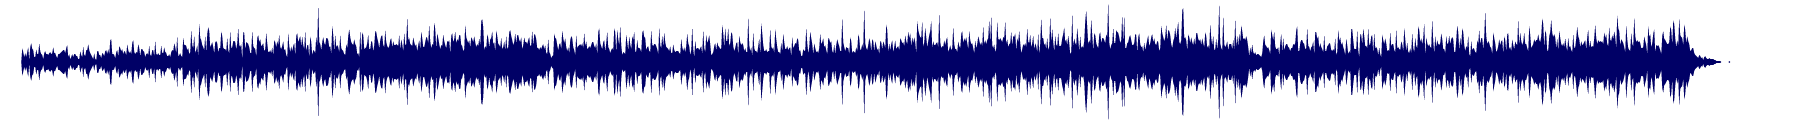 waveform of track #67993